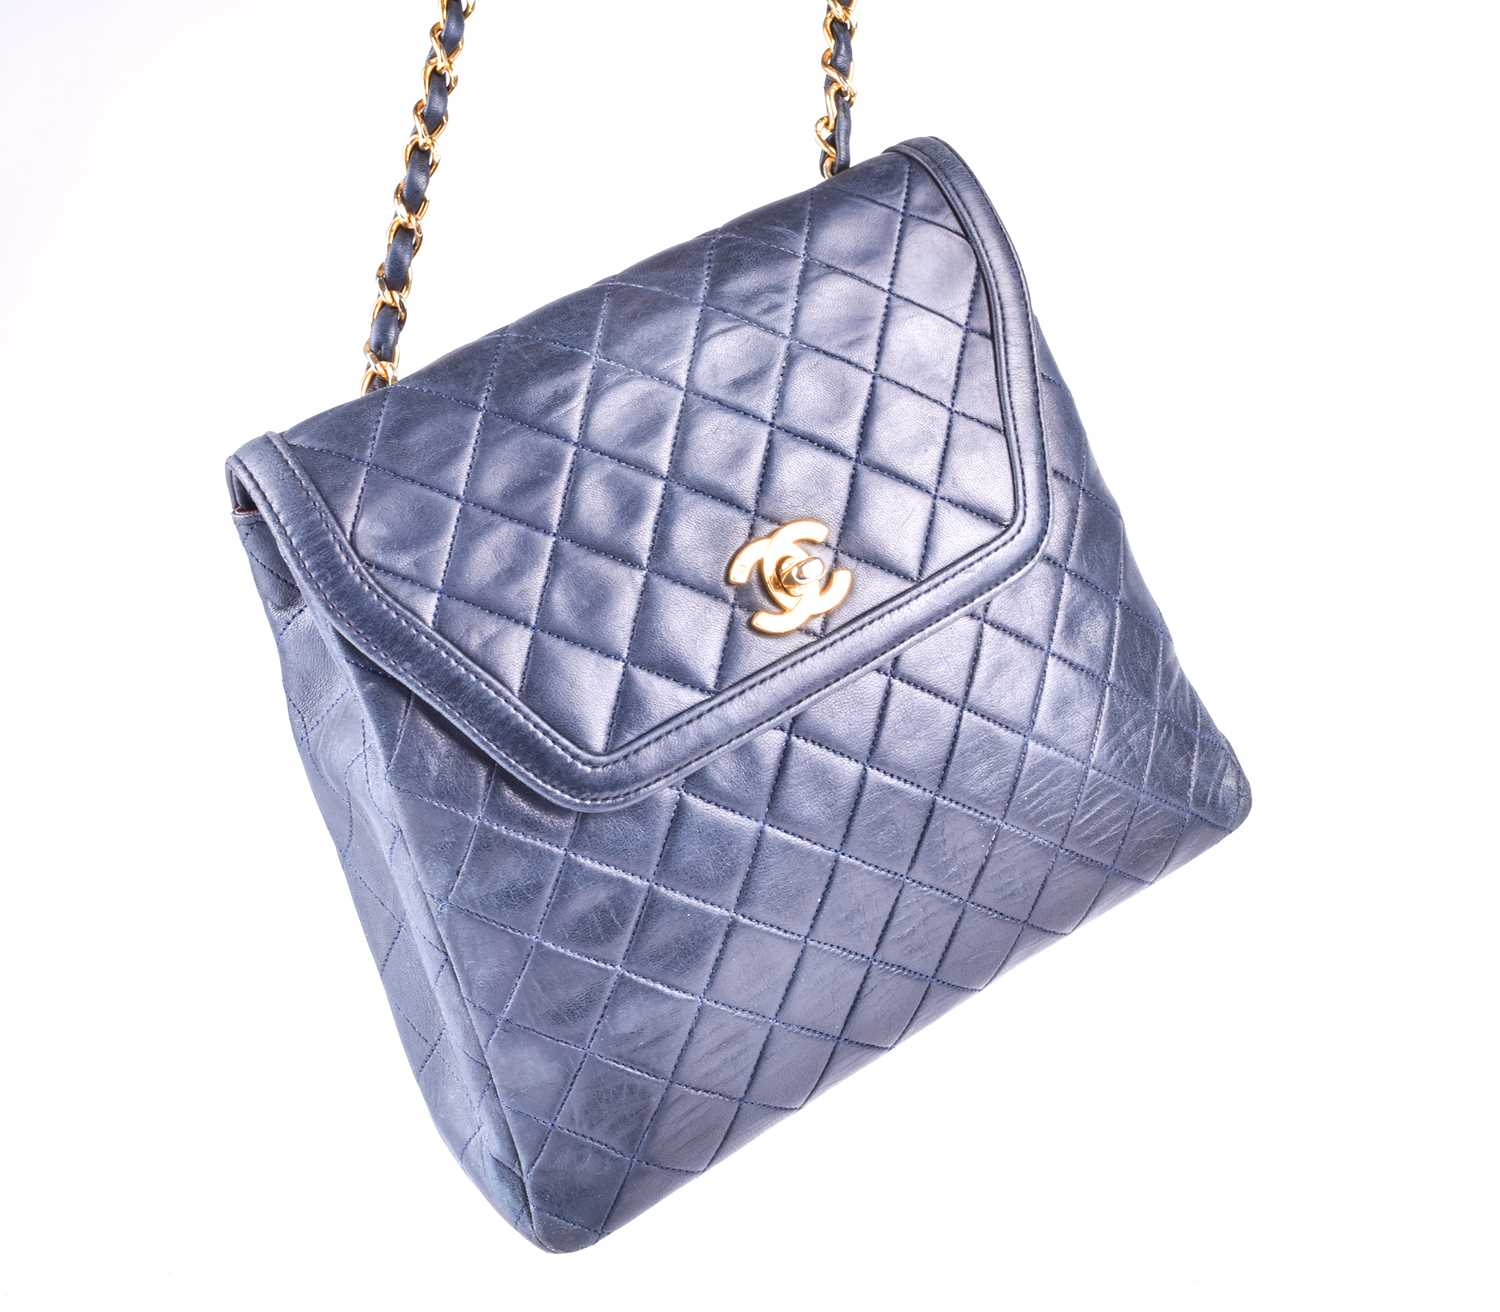 Chanel. A classic quilted leather handbag, of tapered square design, with gold tone CC logo clasp, - Image 12 of 26